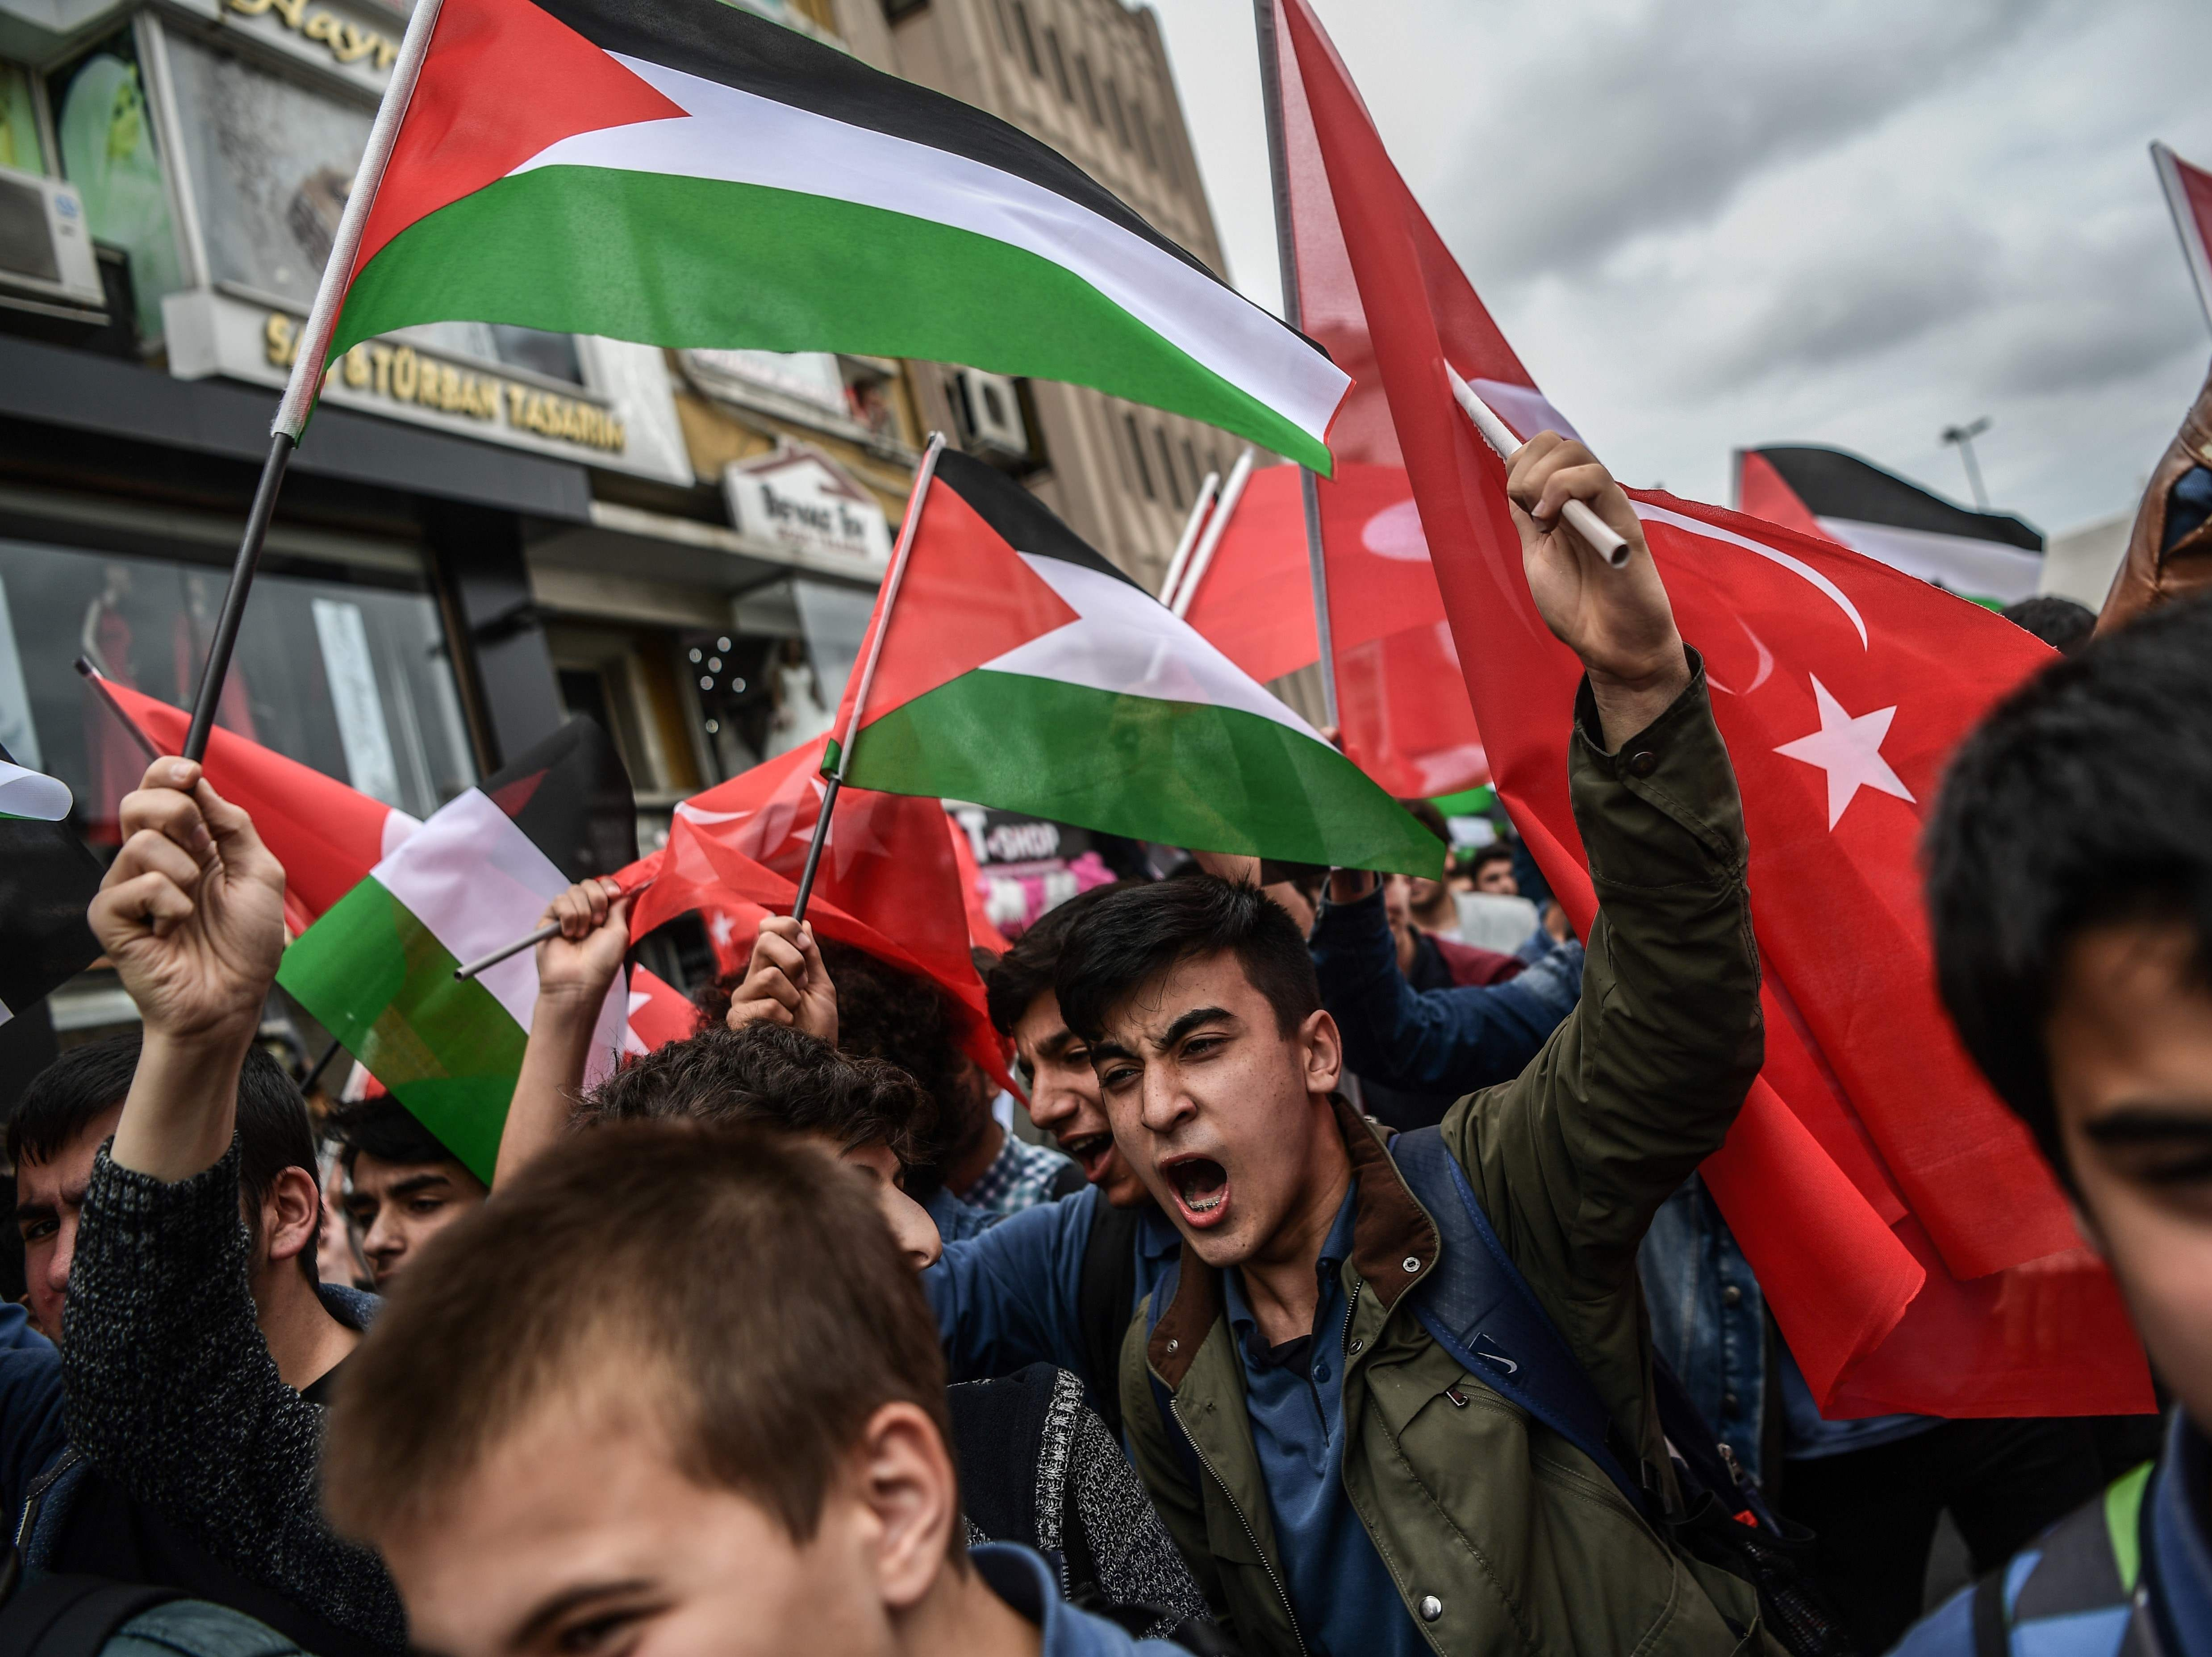 May 11, 2018: Protesters wave Turkish and Palestinian flags as they shout slogans against Israel and USA during a demonstration in Istanbul against  President Trump's controversial policy to recognize Jerusalem as Israel's capital by the opening of a US embassy in the city.  The United States is scheduled to move its embassy in Israel from Tel Aviv to Jerusalem, which has resulted in protest rallies across the world.